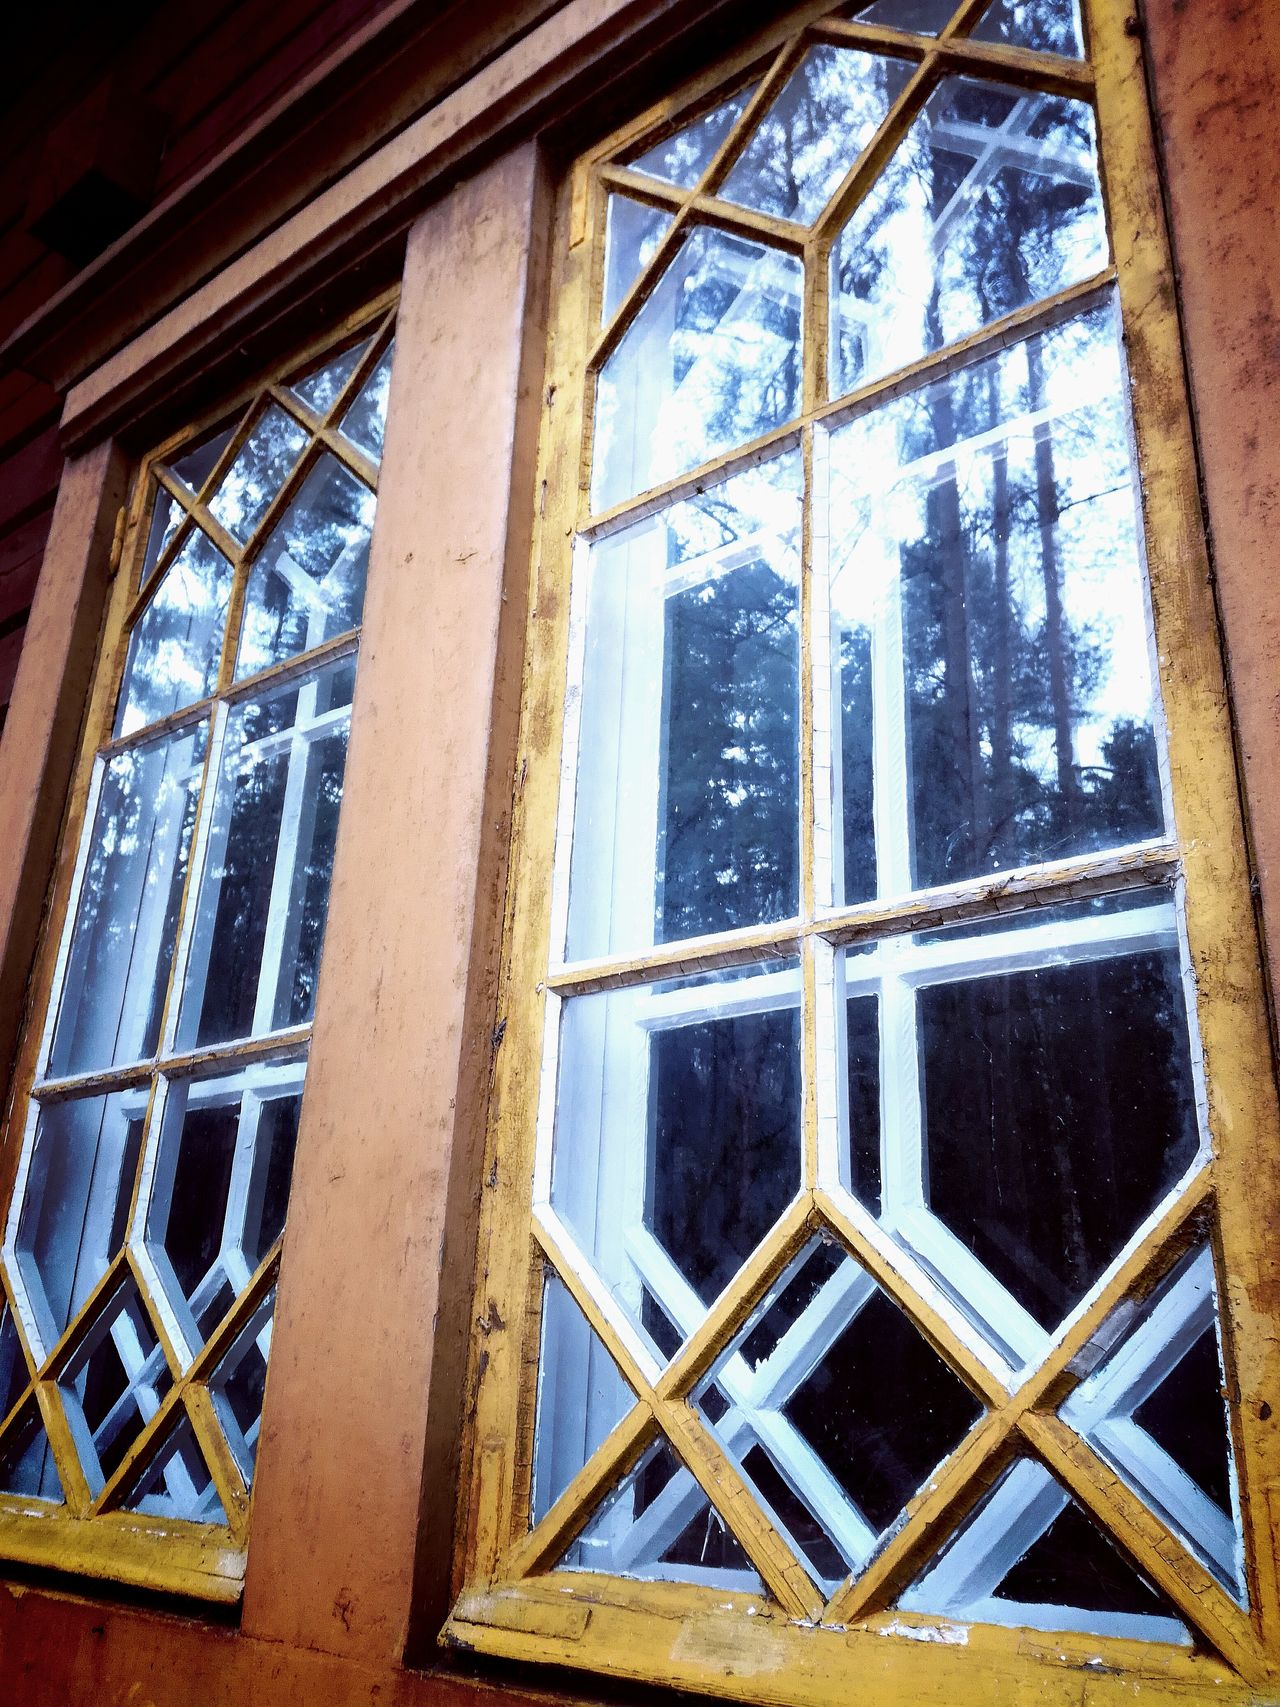 Window Window Frame No People Architecture Outdoors Close-up Day Old Buildings Glass Windows Crisscross Reflecting Rural Scene Old Houses Finland Lines And Angles Ols Style Romantic Style Rural Decay Vintage